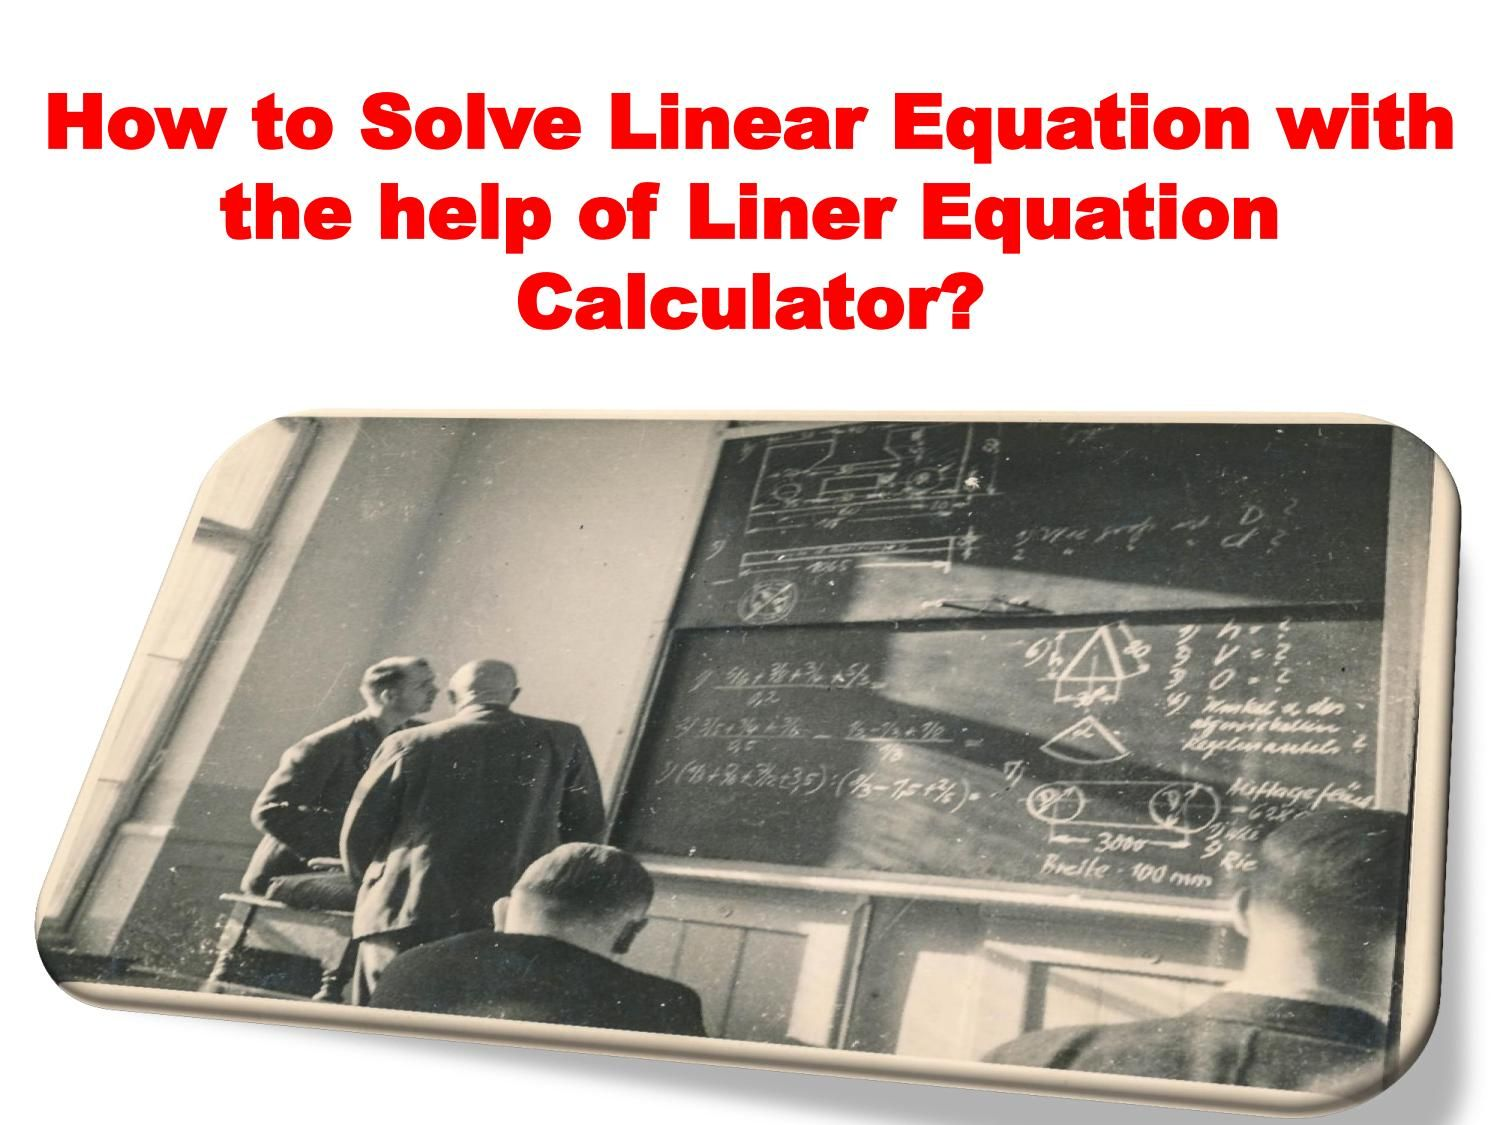 How To Solve Linear Equation With The Help Of Liner